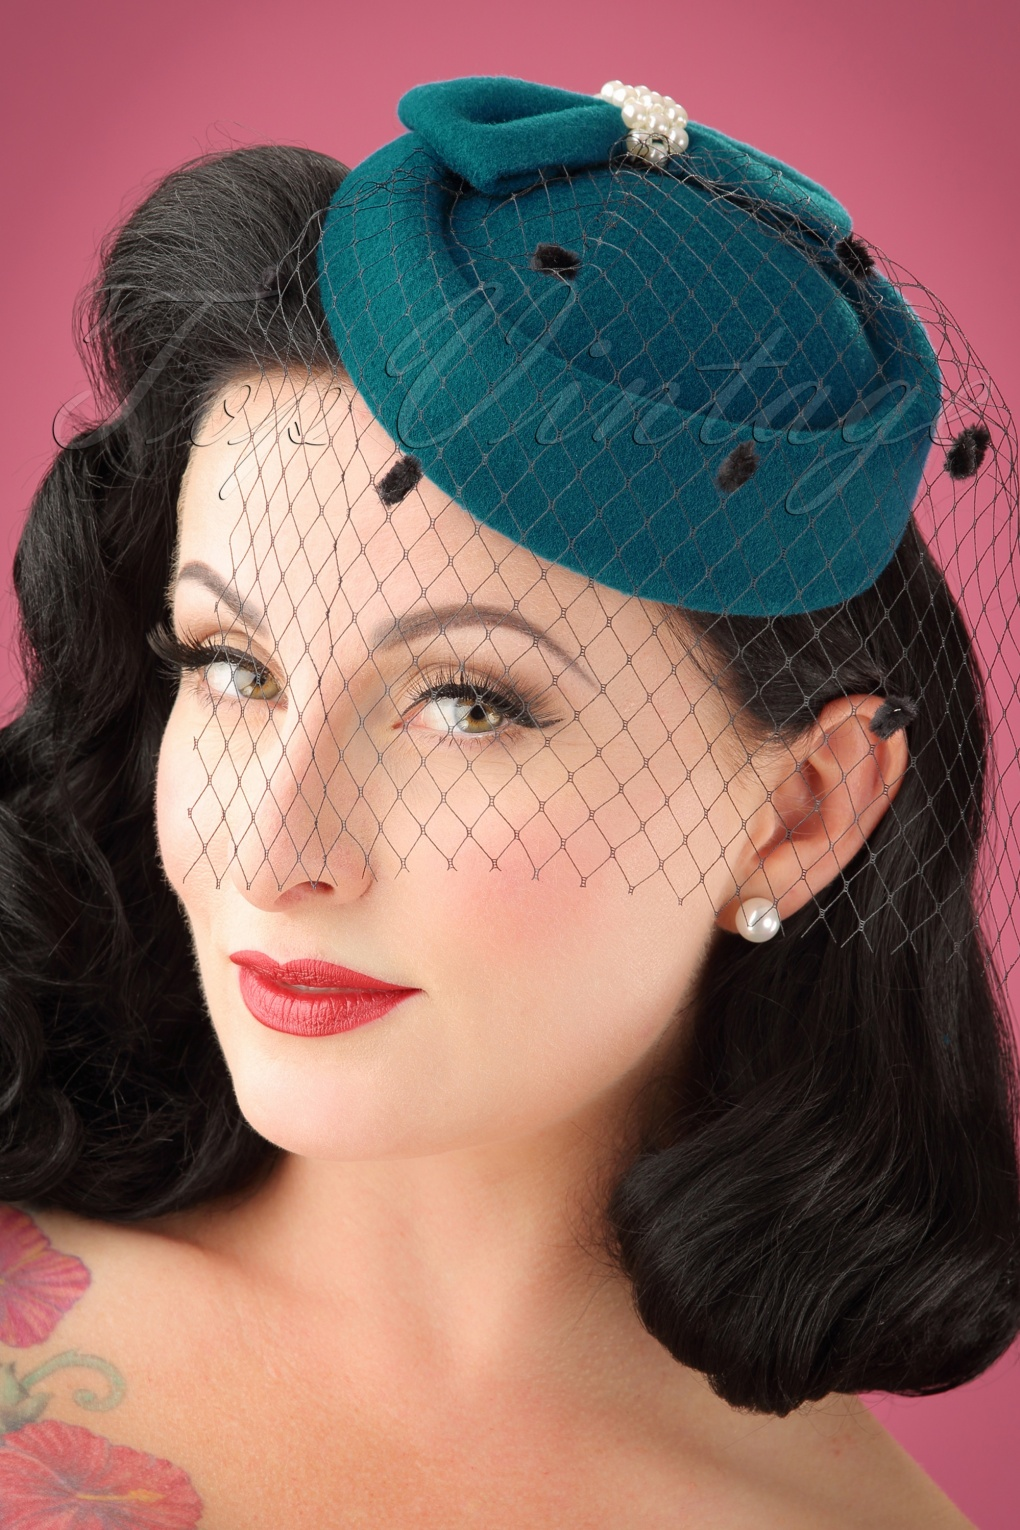 Women's Vintage Hats | Old Fashioned Hats | Retro Hats 50s Judy Hat in Teal £17.48 AT vintagedancer.com